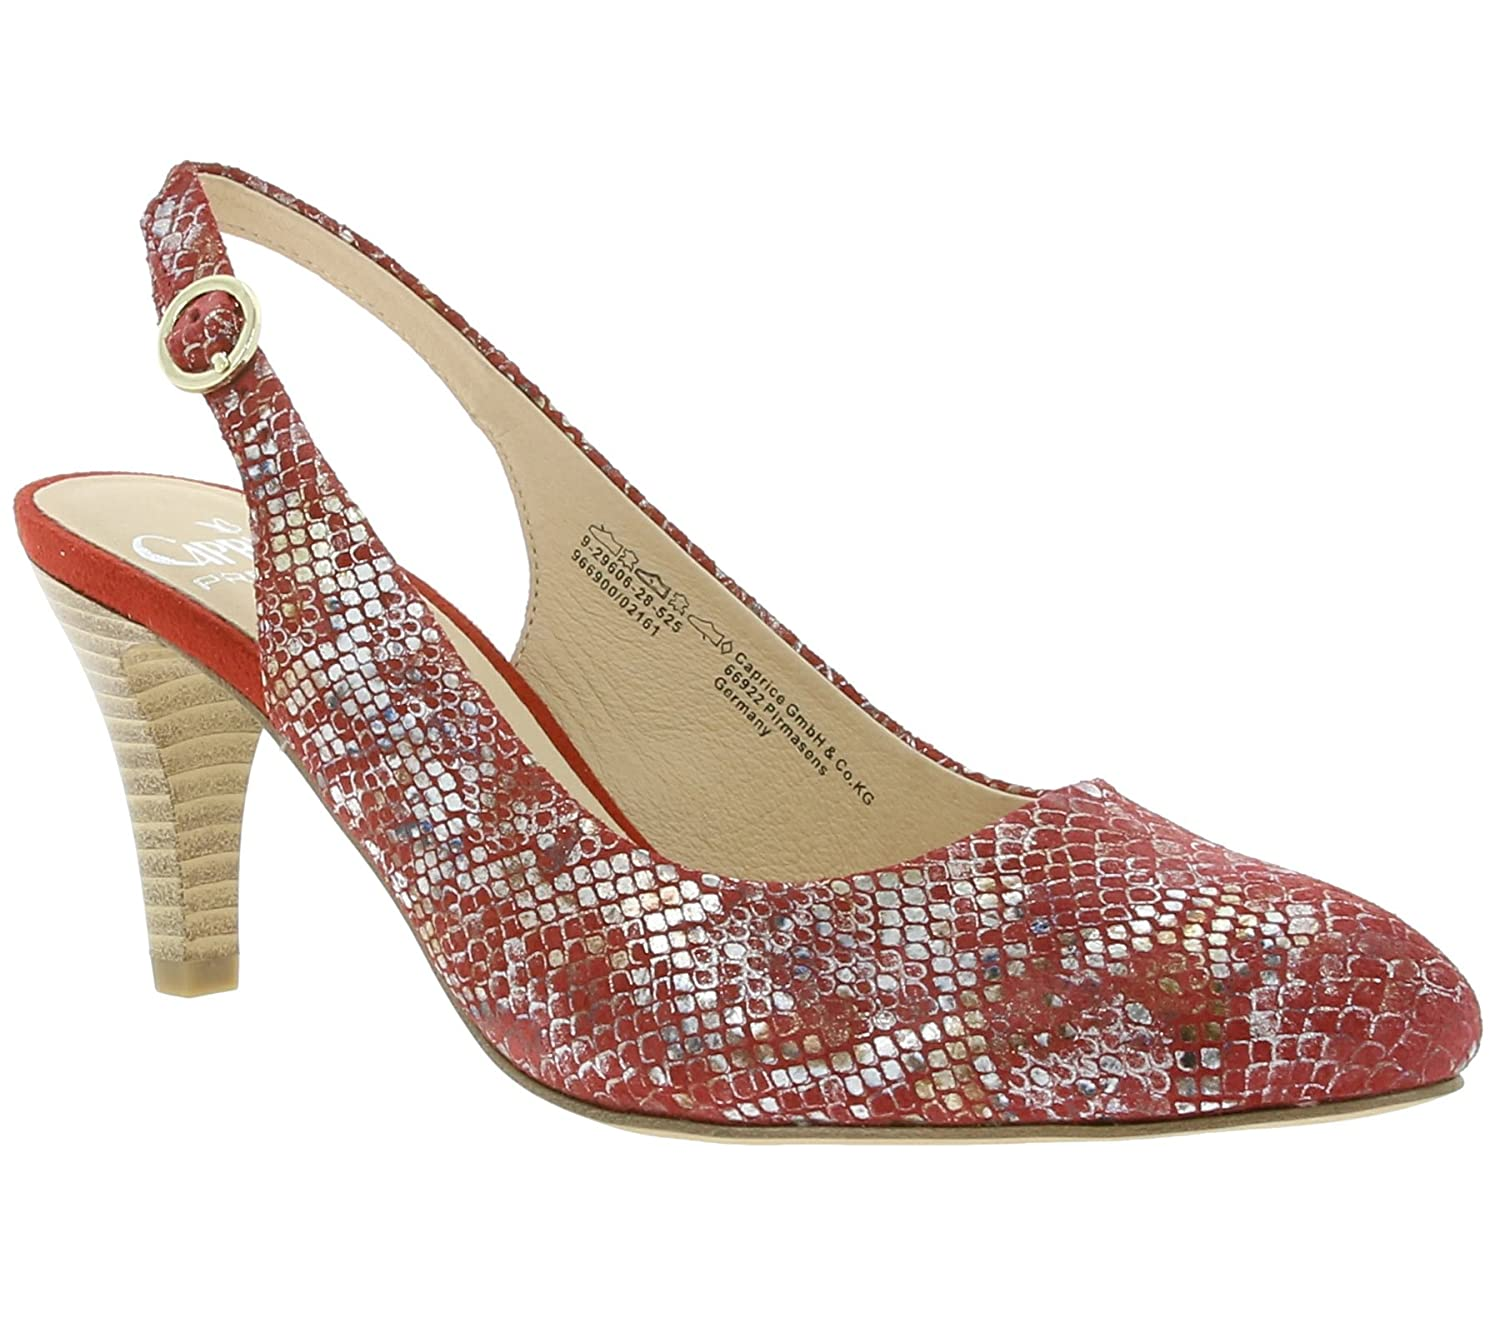 on sale 61ca6 2dc38 CAPRICE Reptile Women's Real Leather Pumps Red 9-29606-28 ...